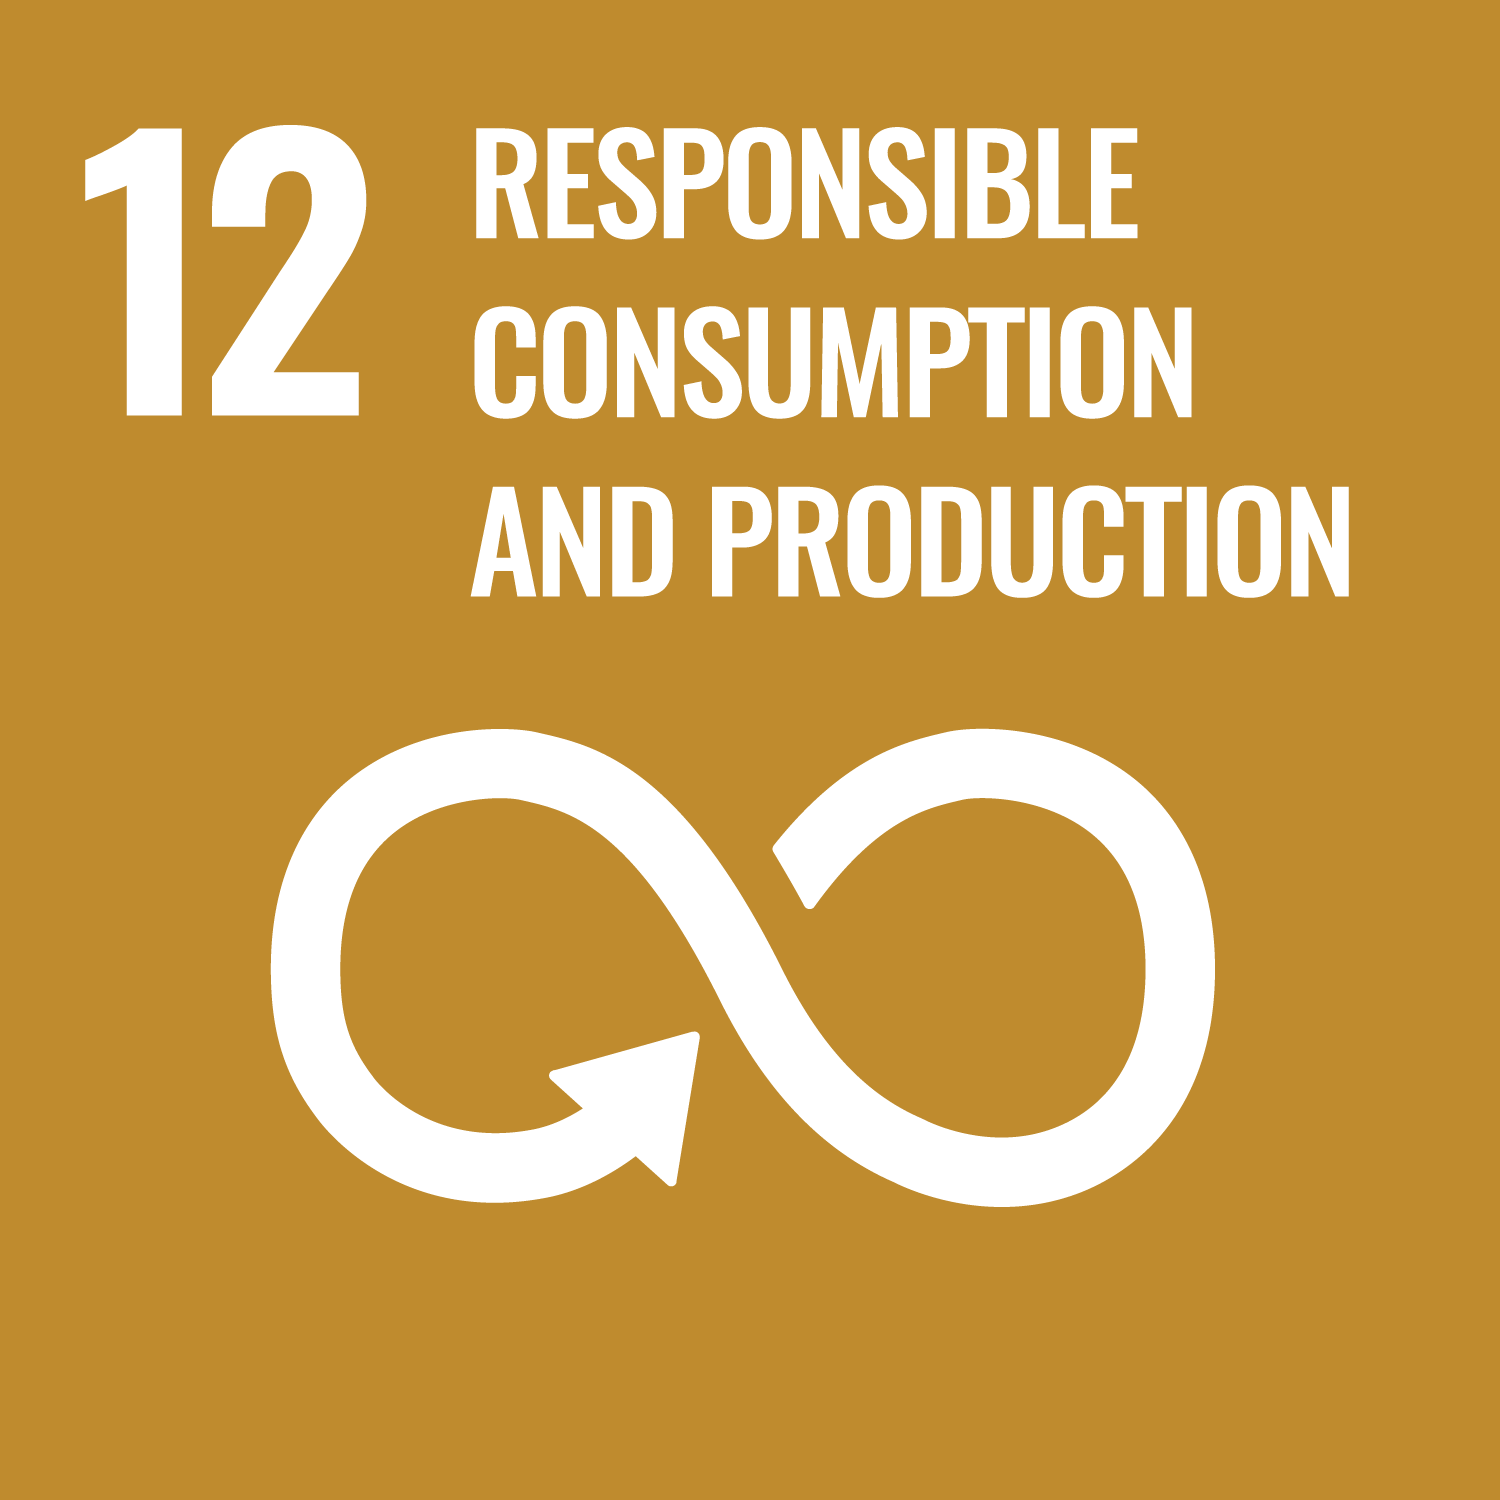 Sustainable Development Goals – Responsible Consumption and Production